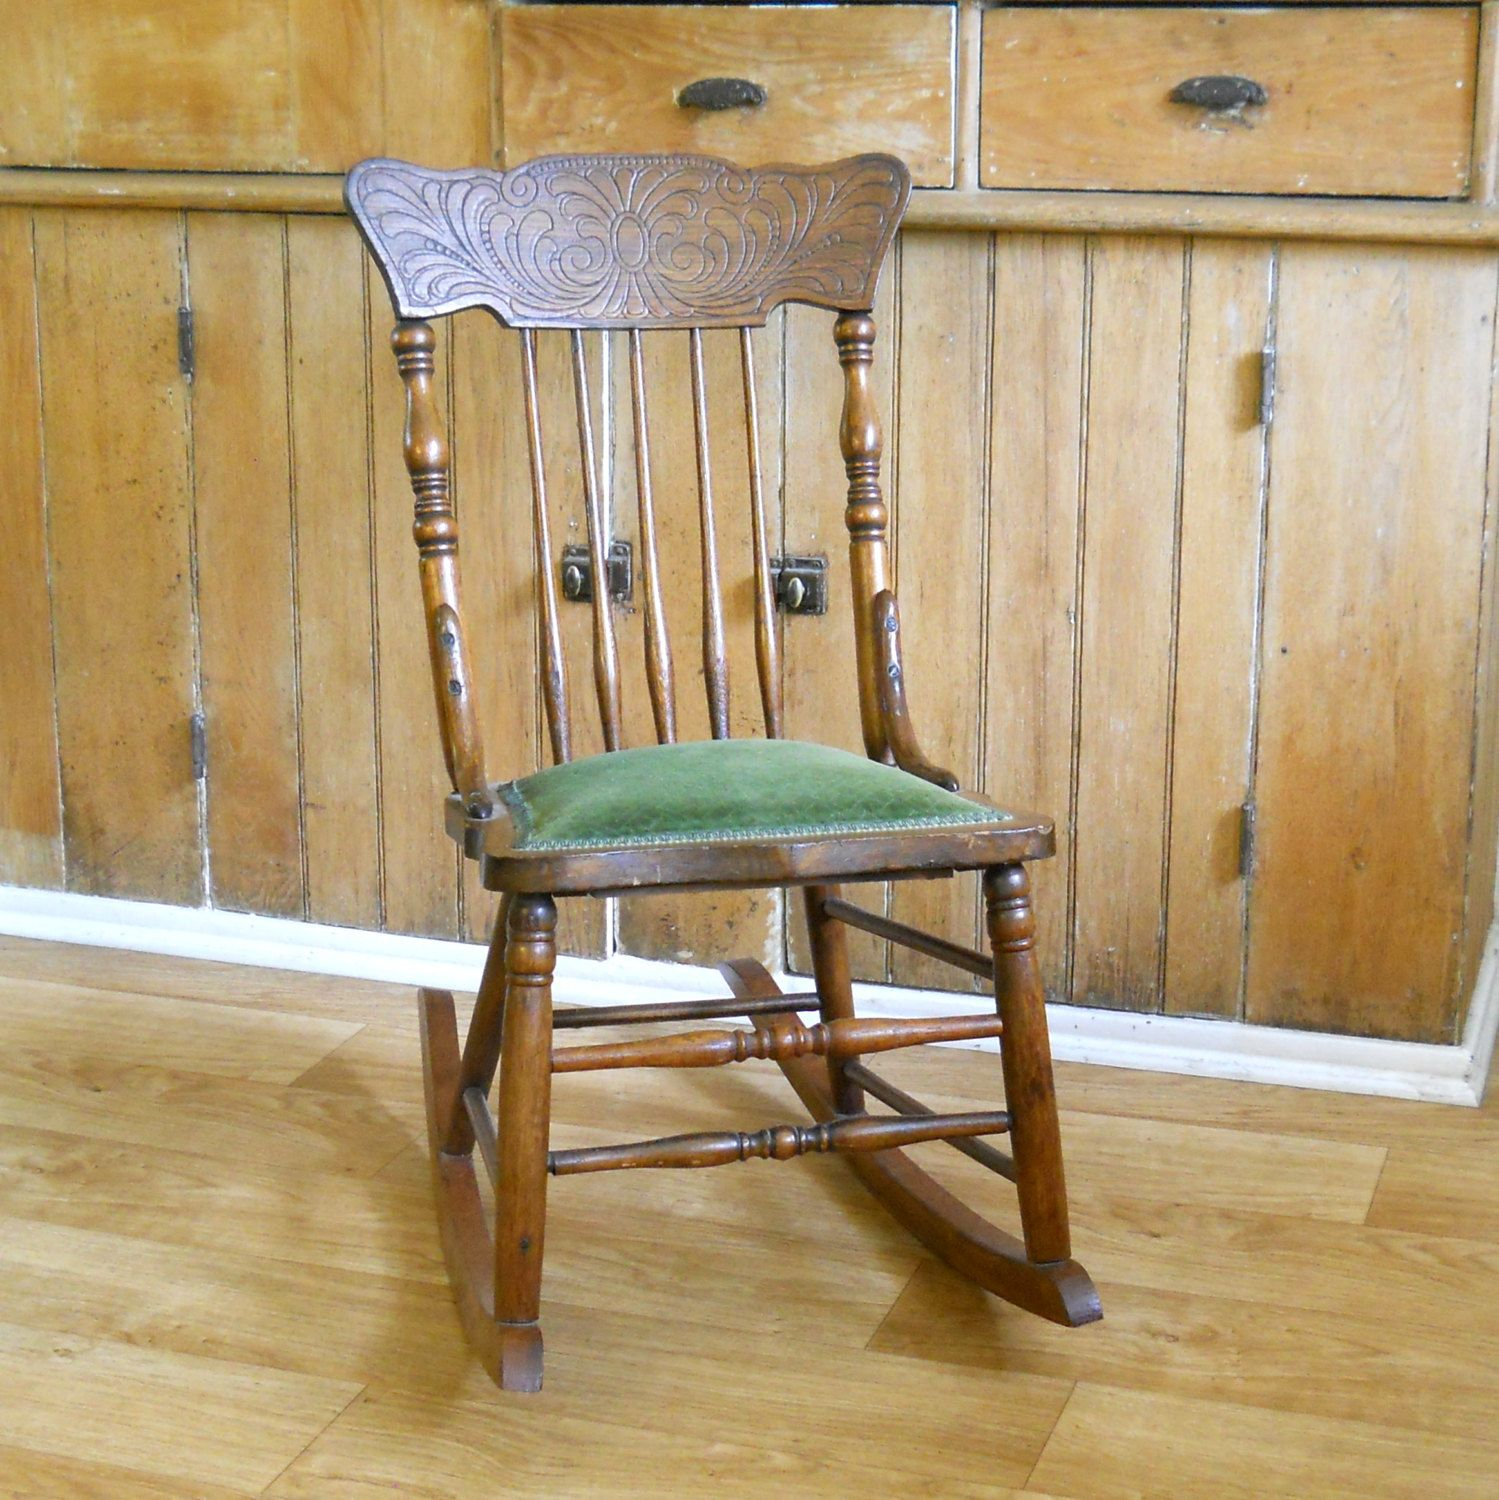 Antique Carved Back Upholstered Seat Rocking Chair • Oak Armless Rocking  Chair with Green Seat by - Antique Carved Back Upholstered Seat Rocking Chair • Oak Armless